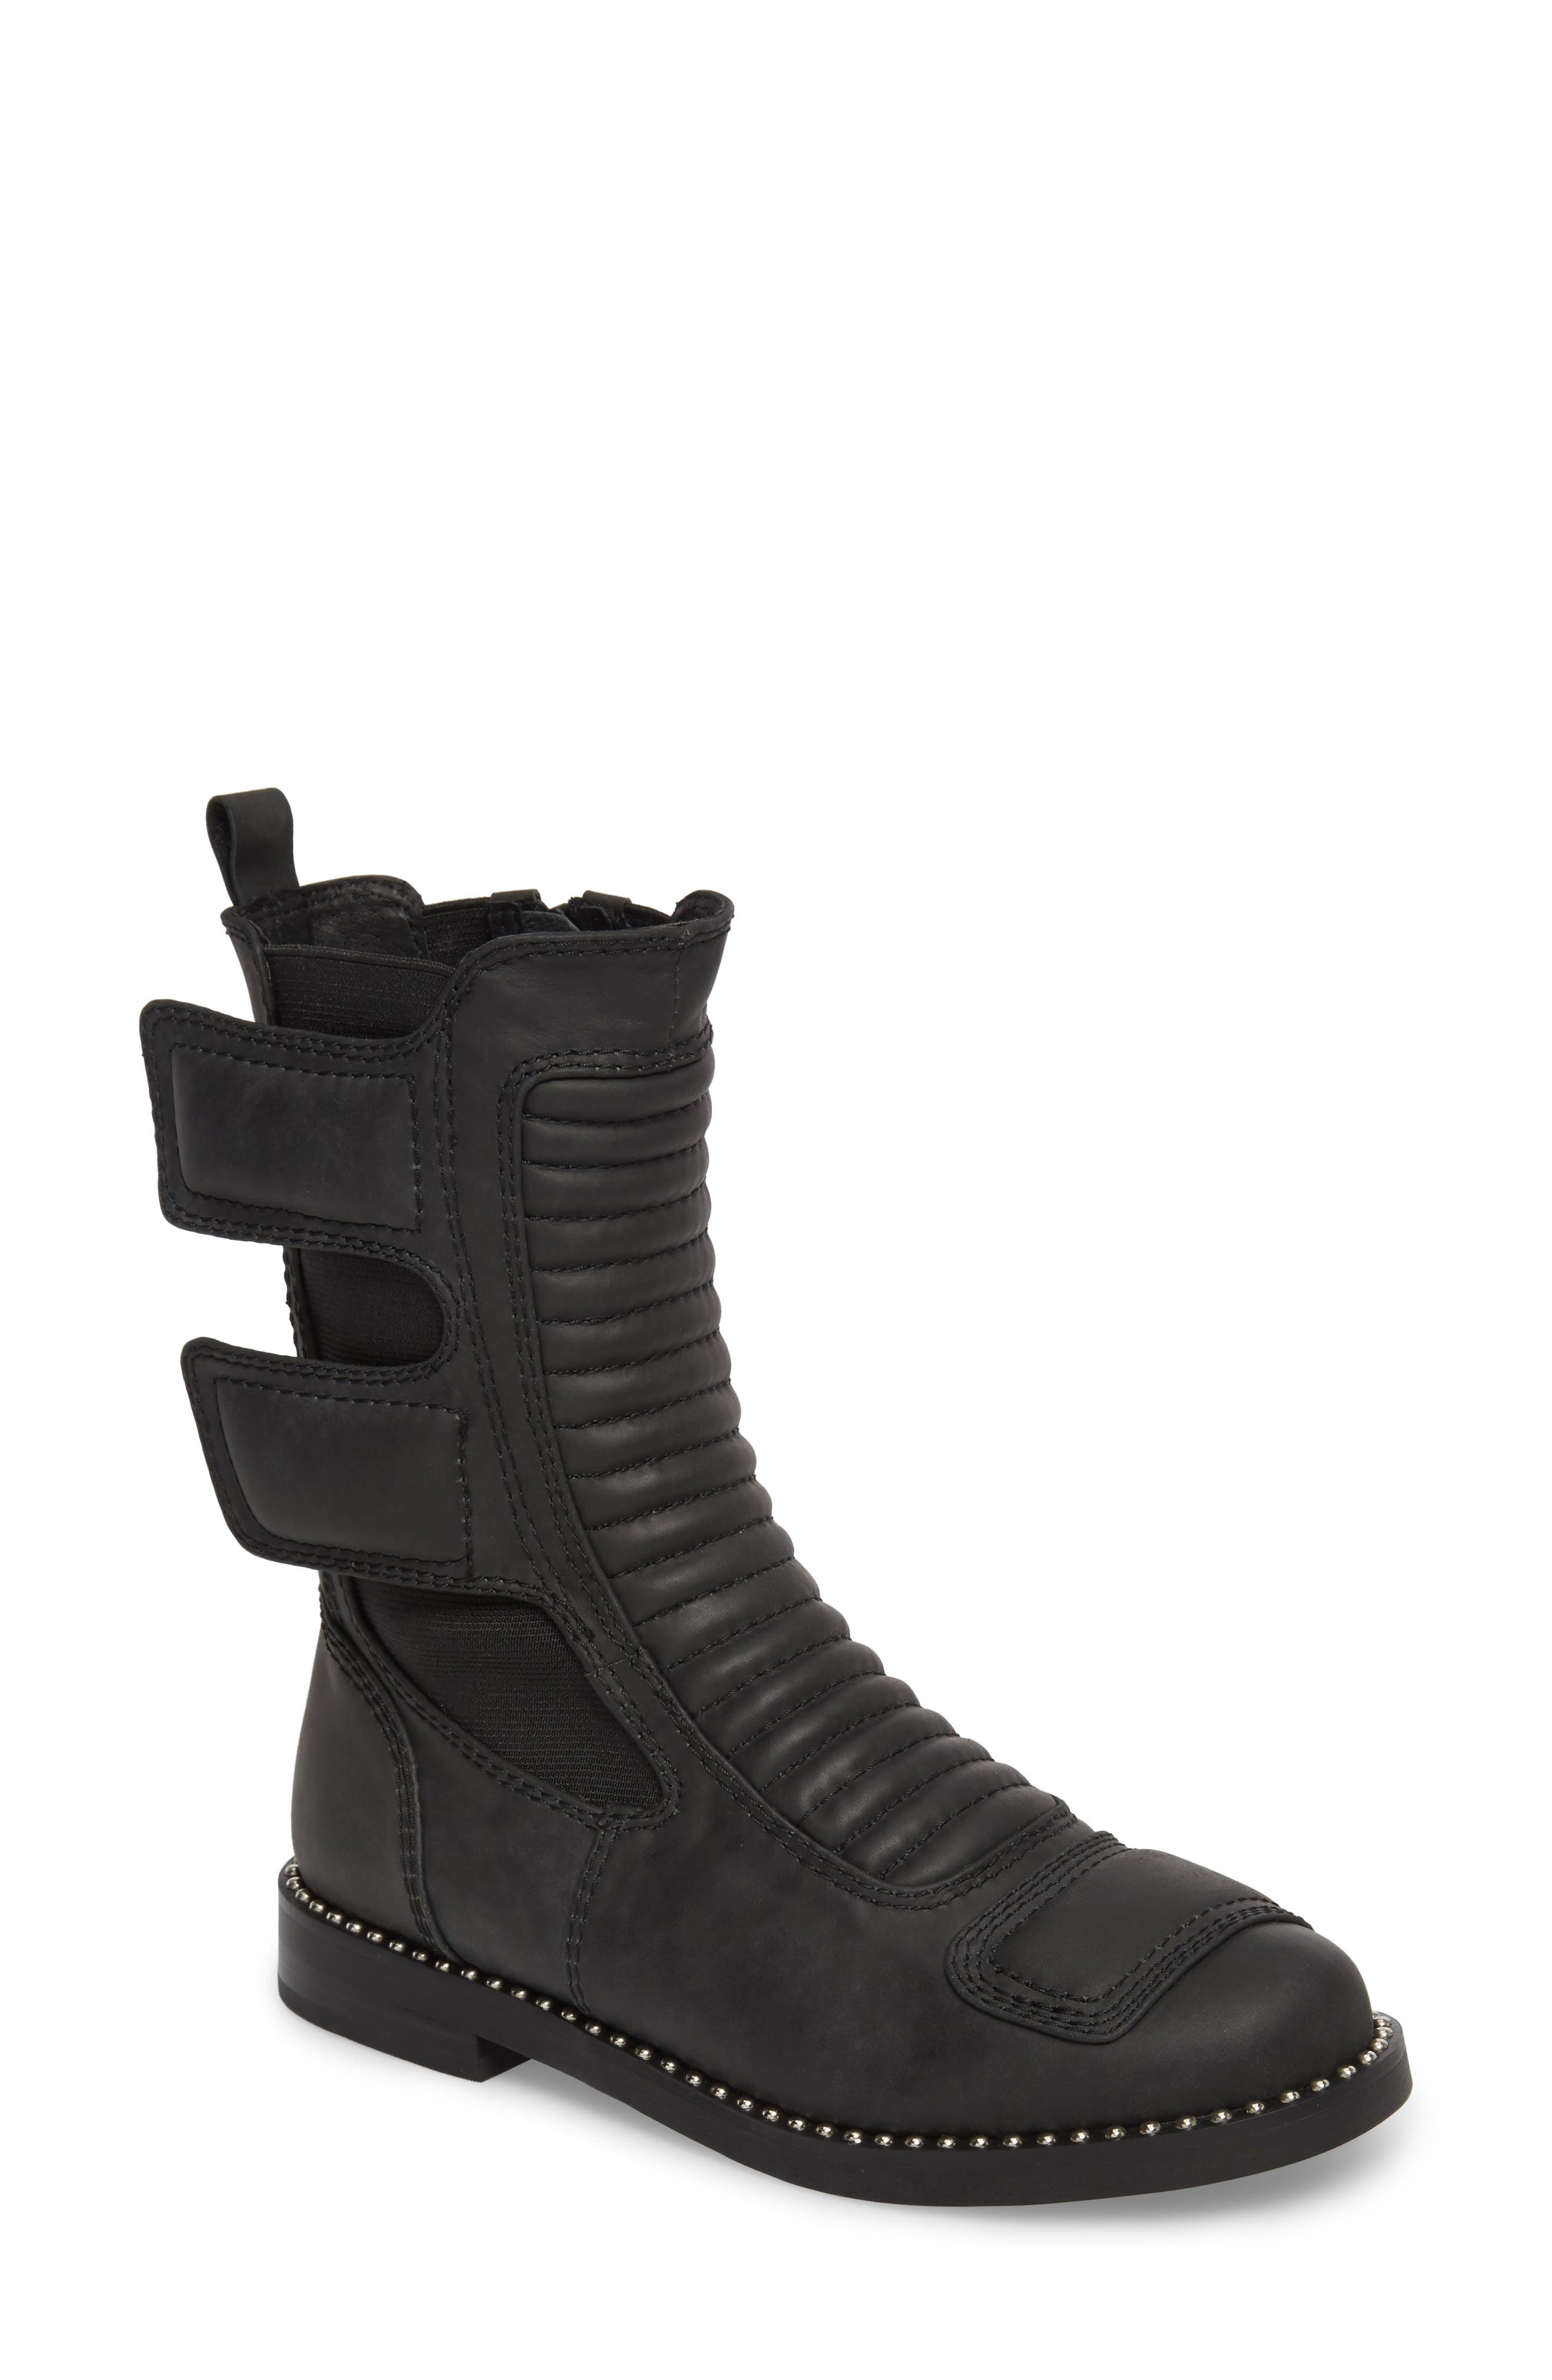 Police Boot,                         Main,                         color, 001